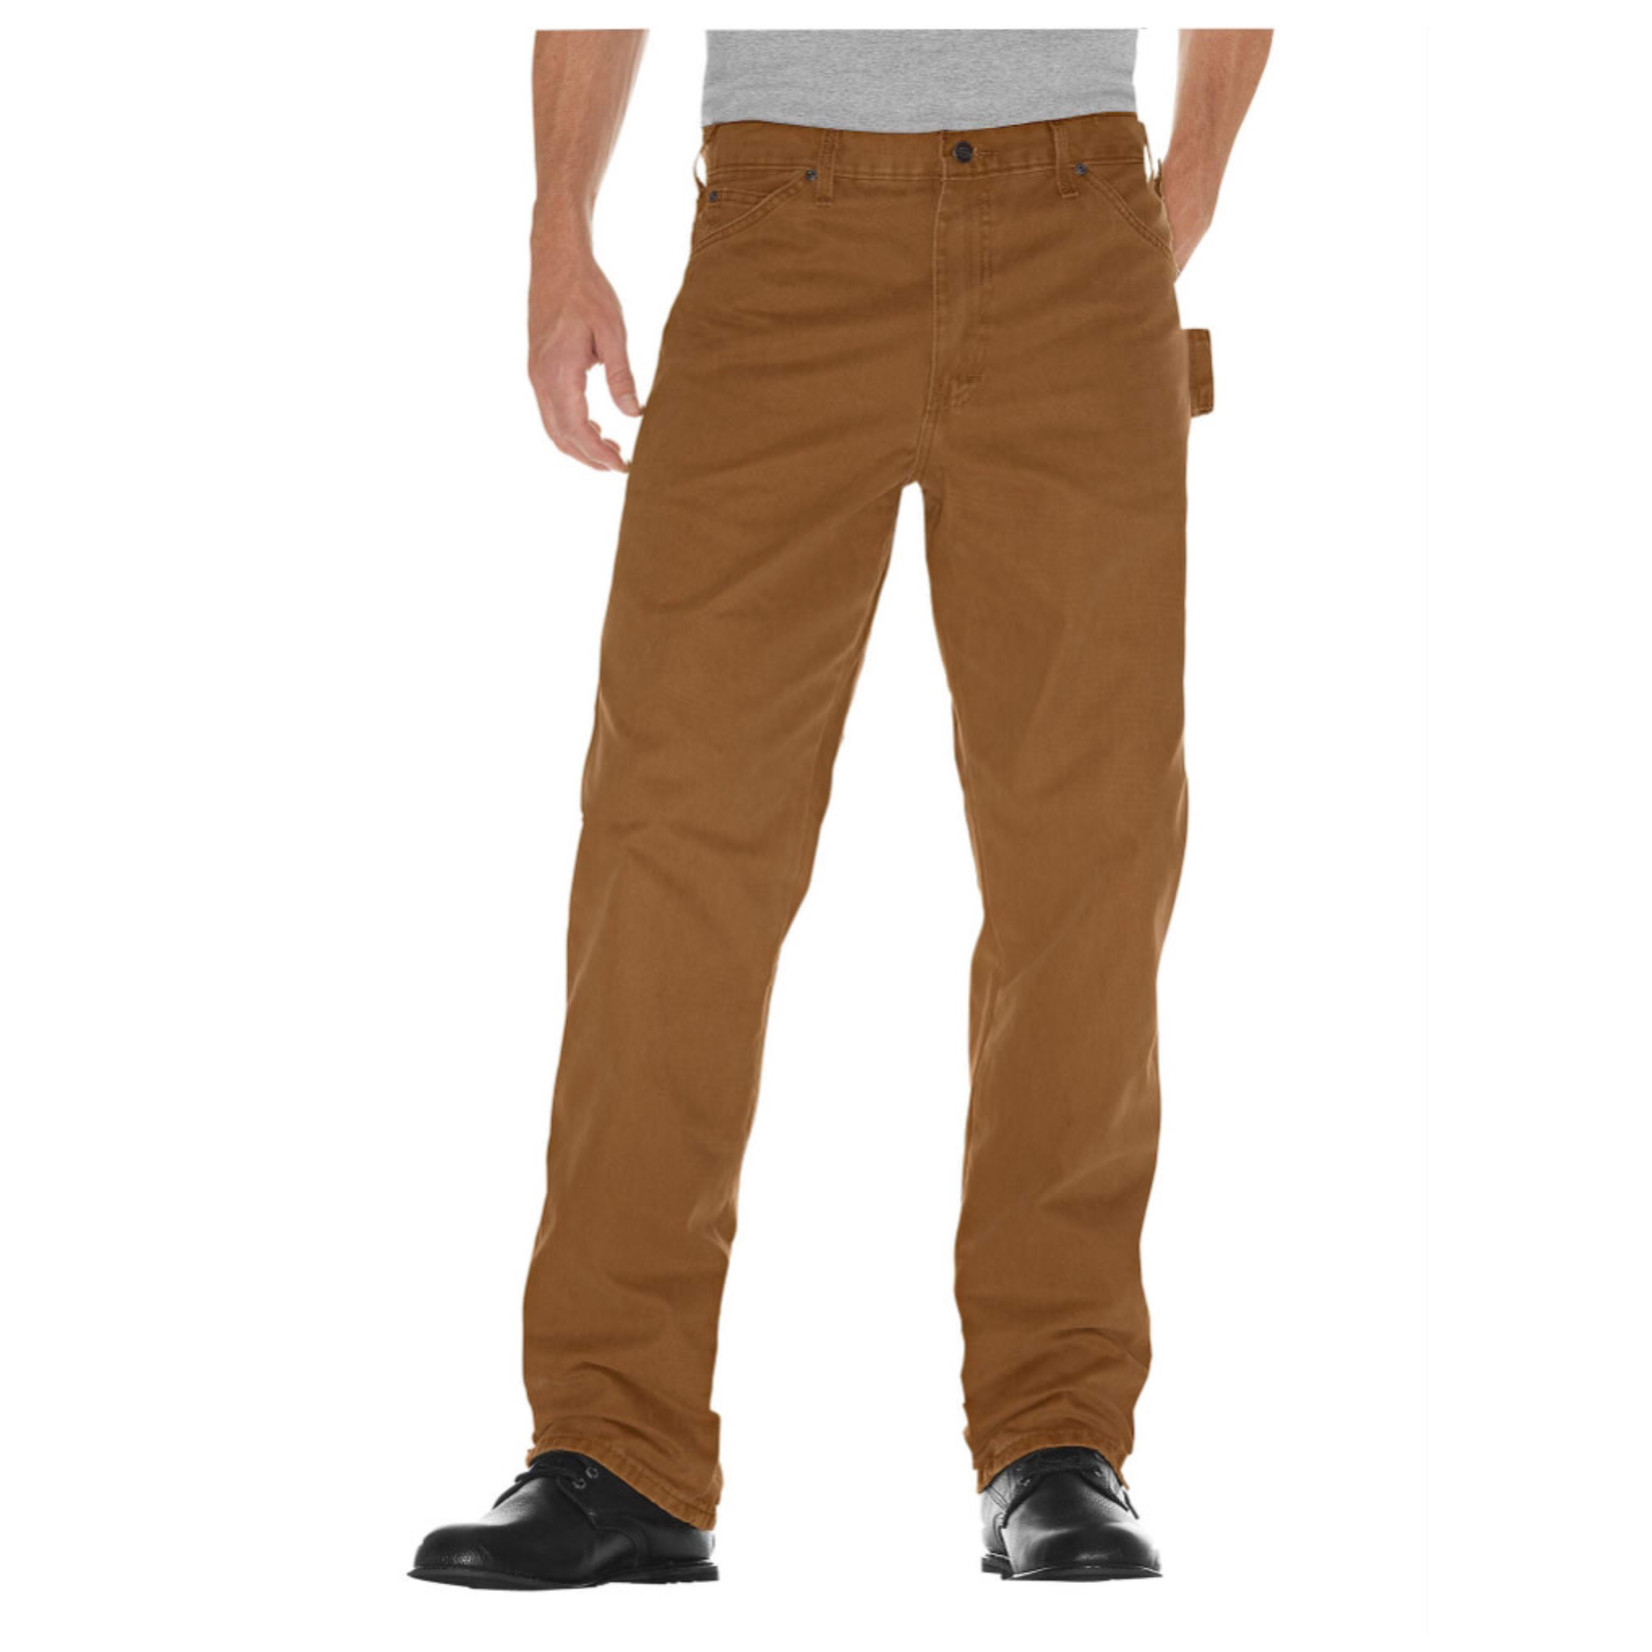 Dickies Dickies Relaxed Fit Straight Leg Carpenter Duck Jeans DU336RBD